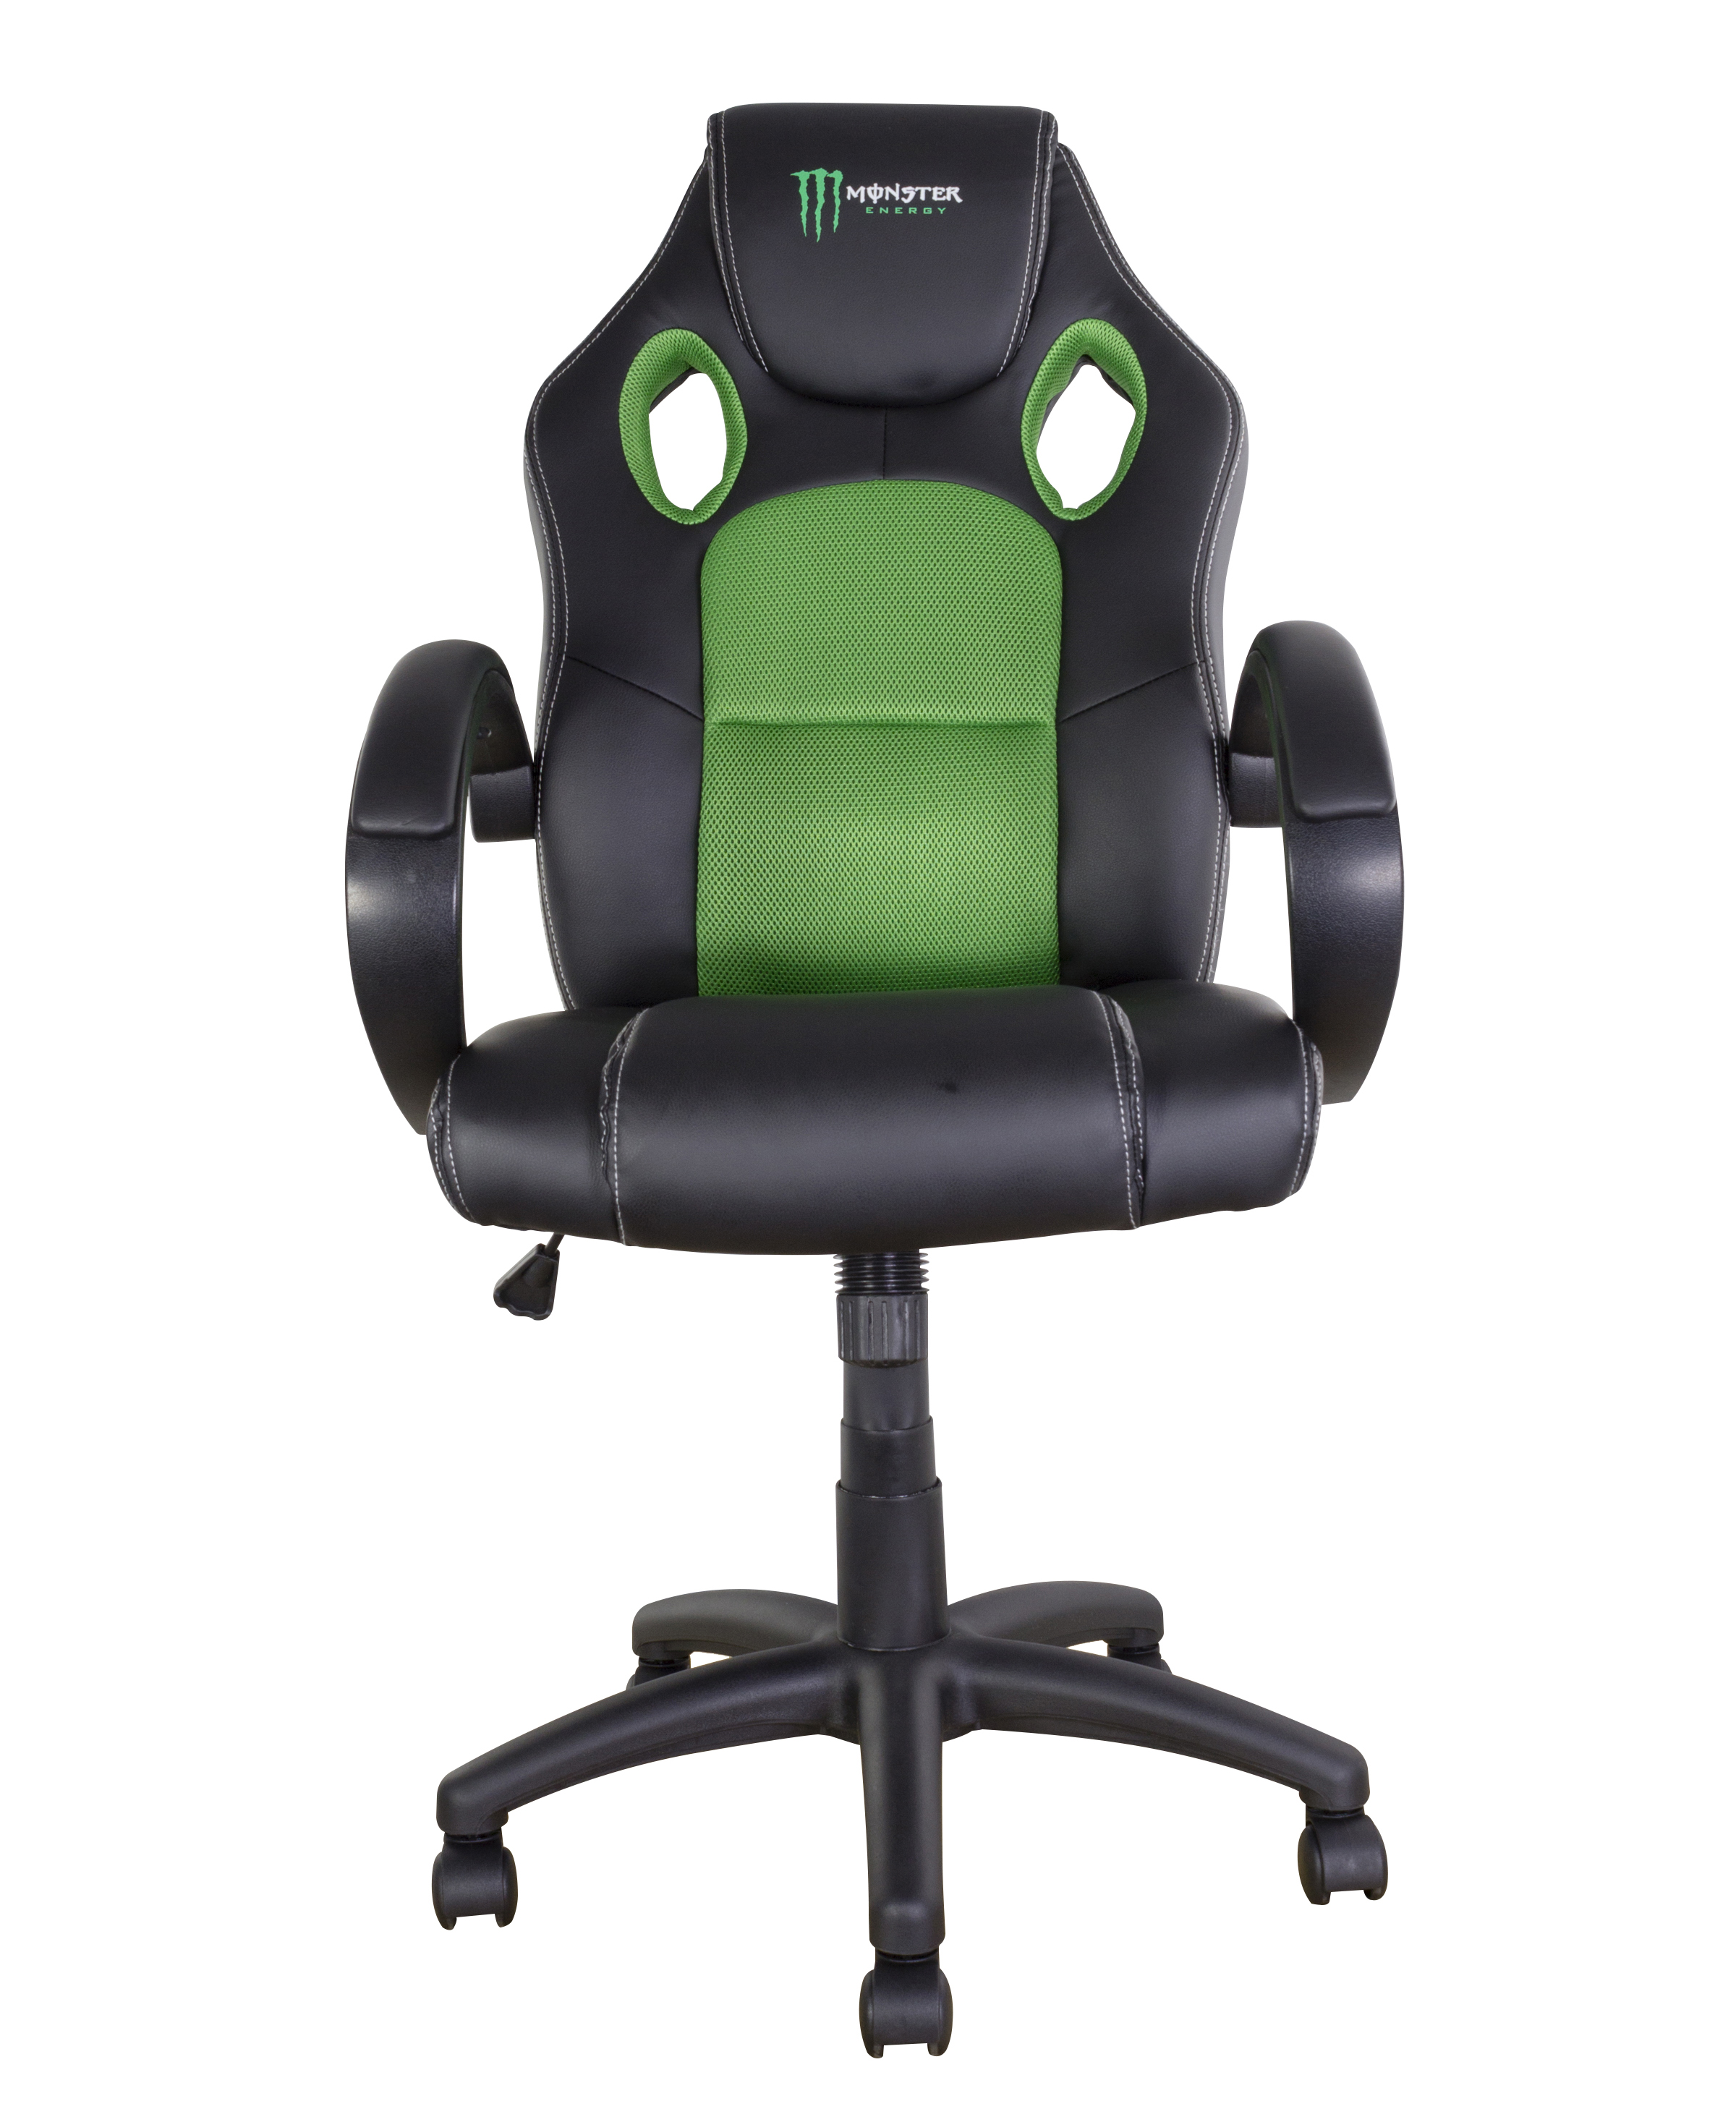 Ex Team Monster Mxgp Office Executive Sports Gaming Chair